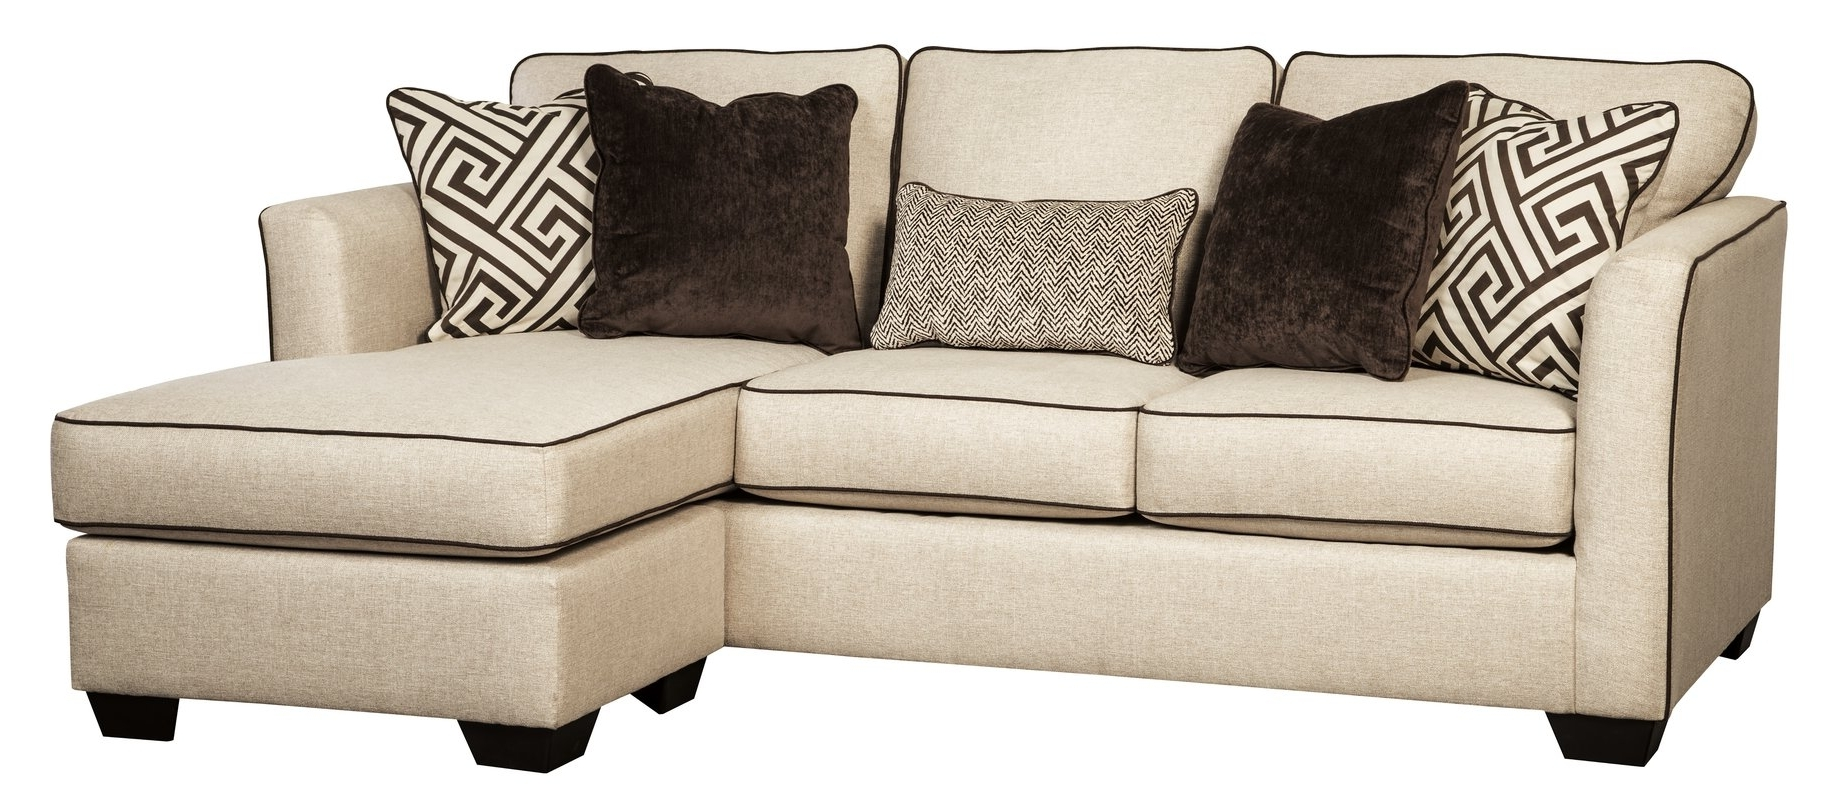 Chaise Sleepers Regarding Newest Benchcraft Carlinworth Sofa Chaise Sleeper & Reviews (View 8 of 15)